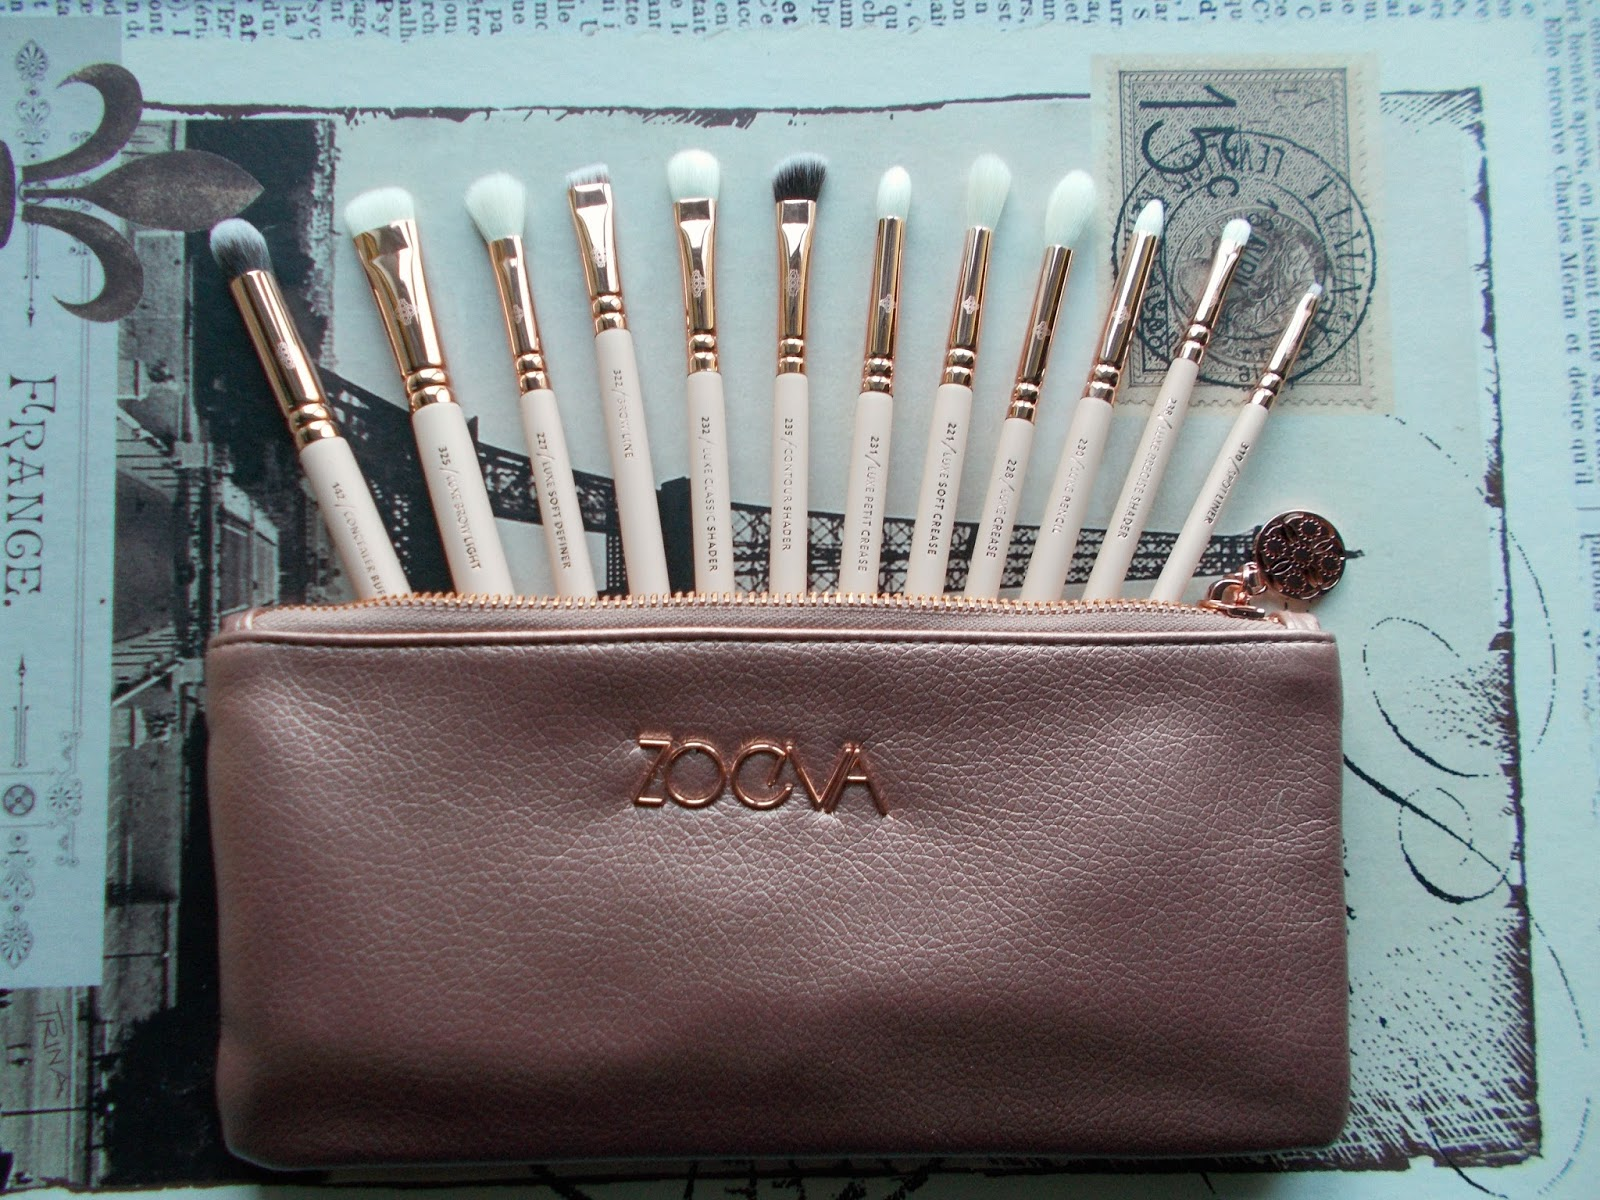 Zoeva Rose Golden Vol. 2 complete eye set review